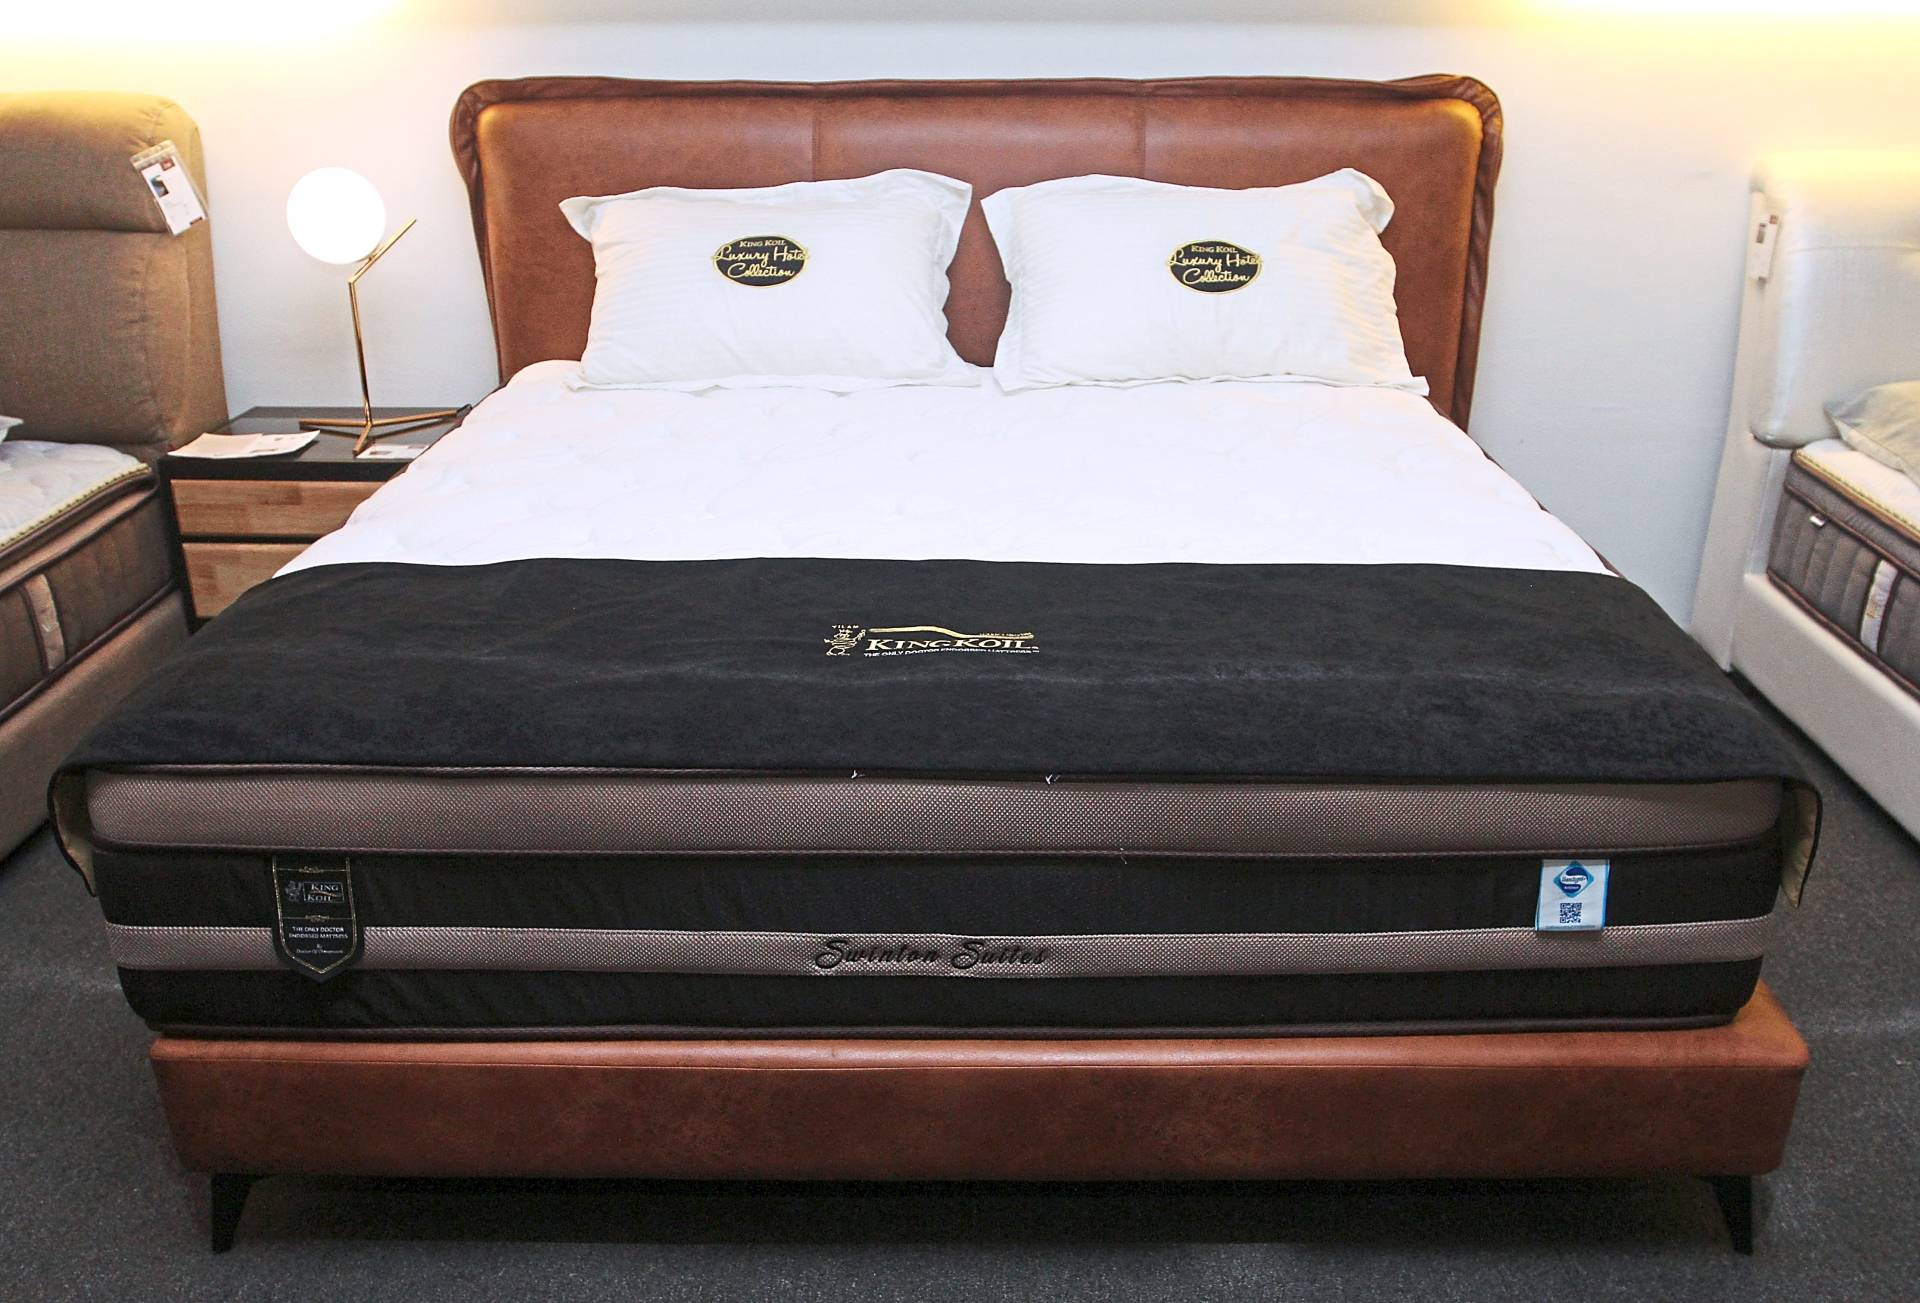 The Swinton Suites mattresses have an anti-static function.